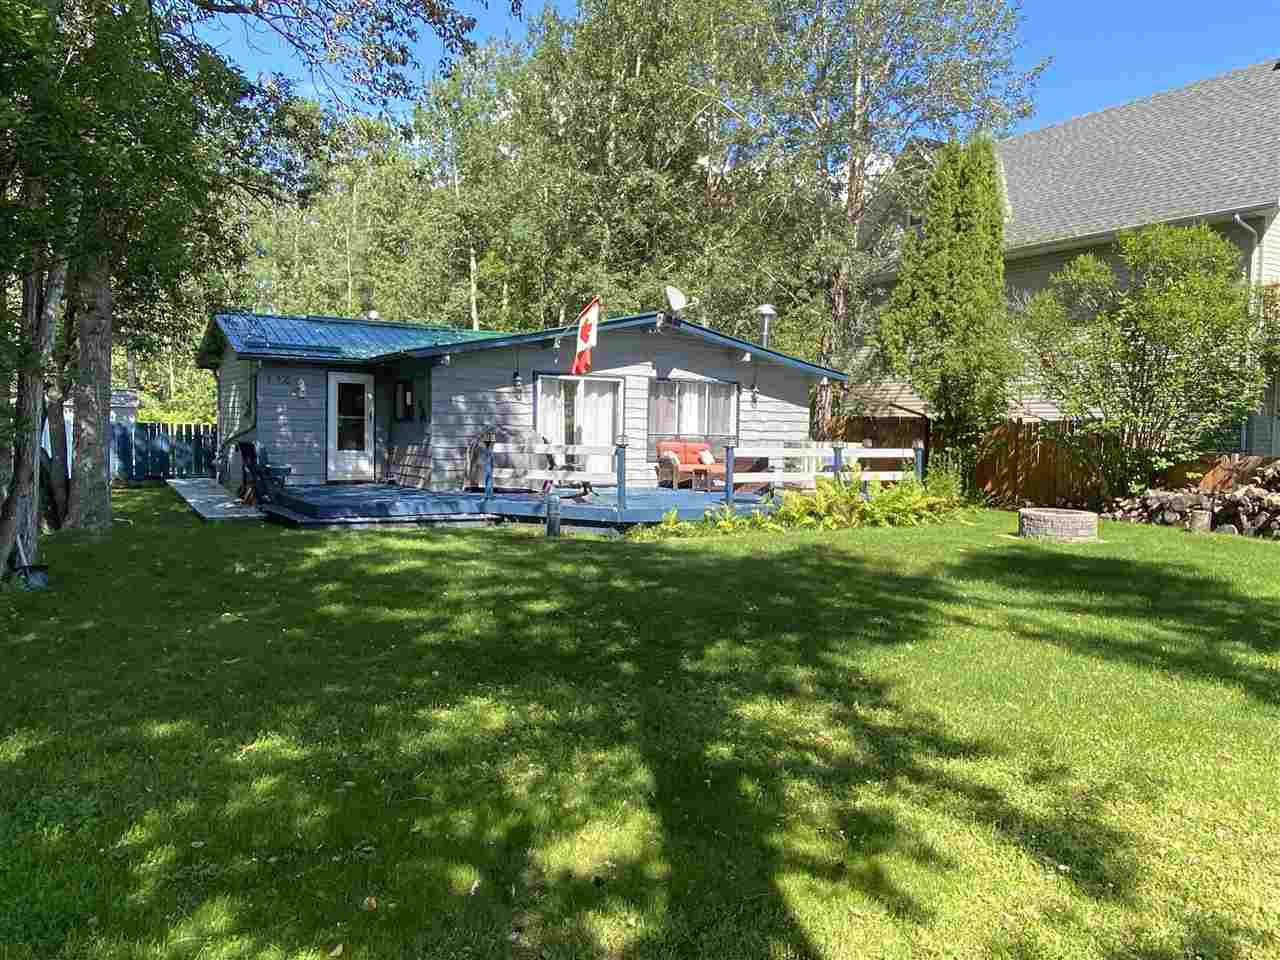 Main Photo: C12 Willow Rd: Rural Leduc County House for sale : MLS®# E4206820